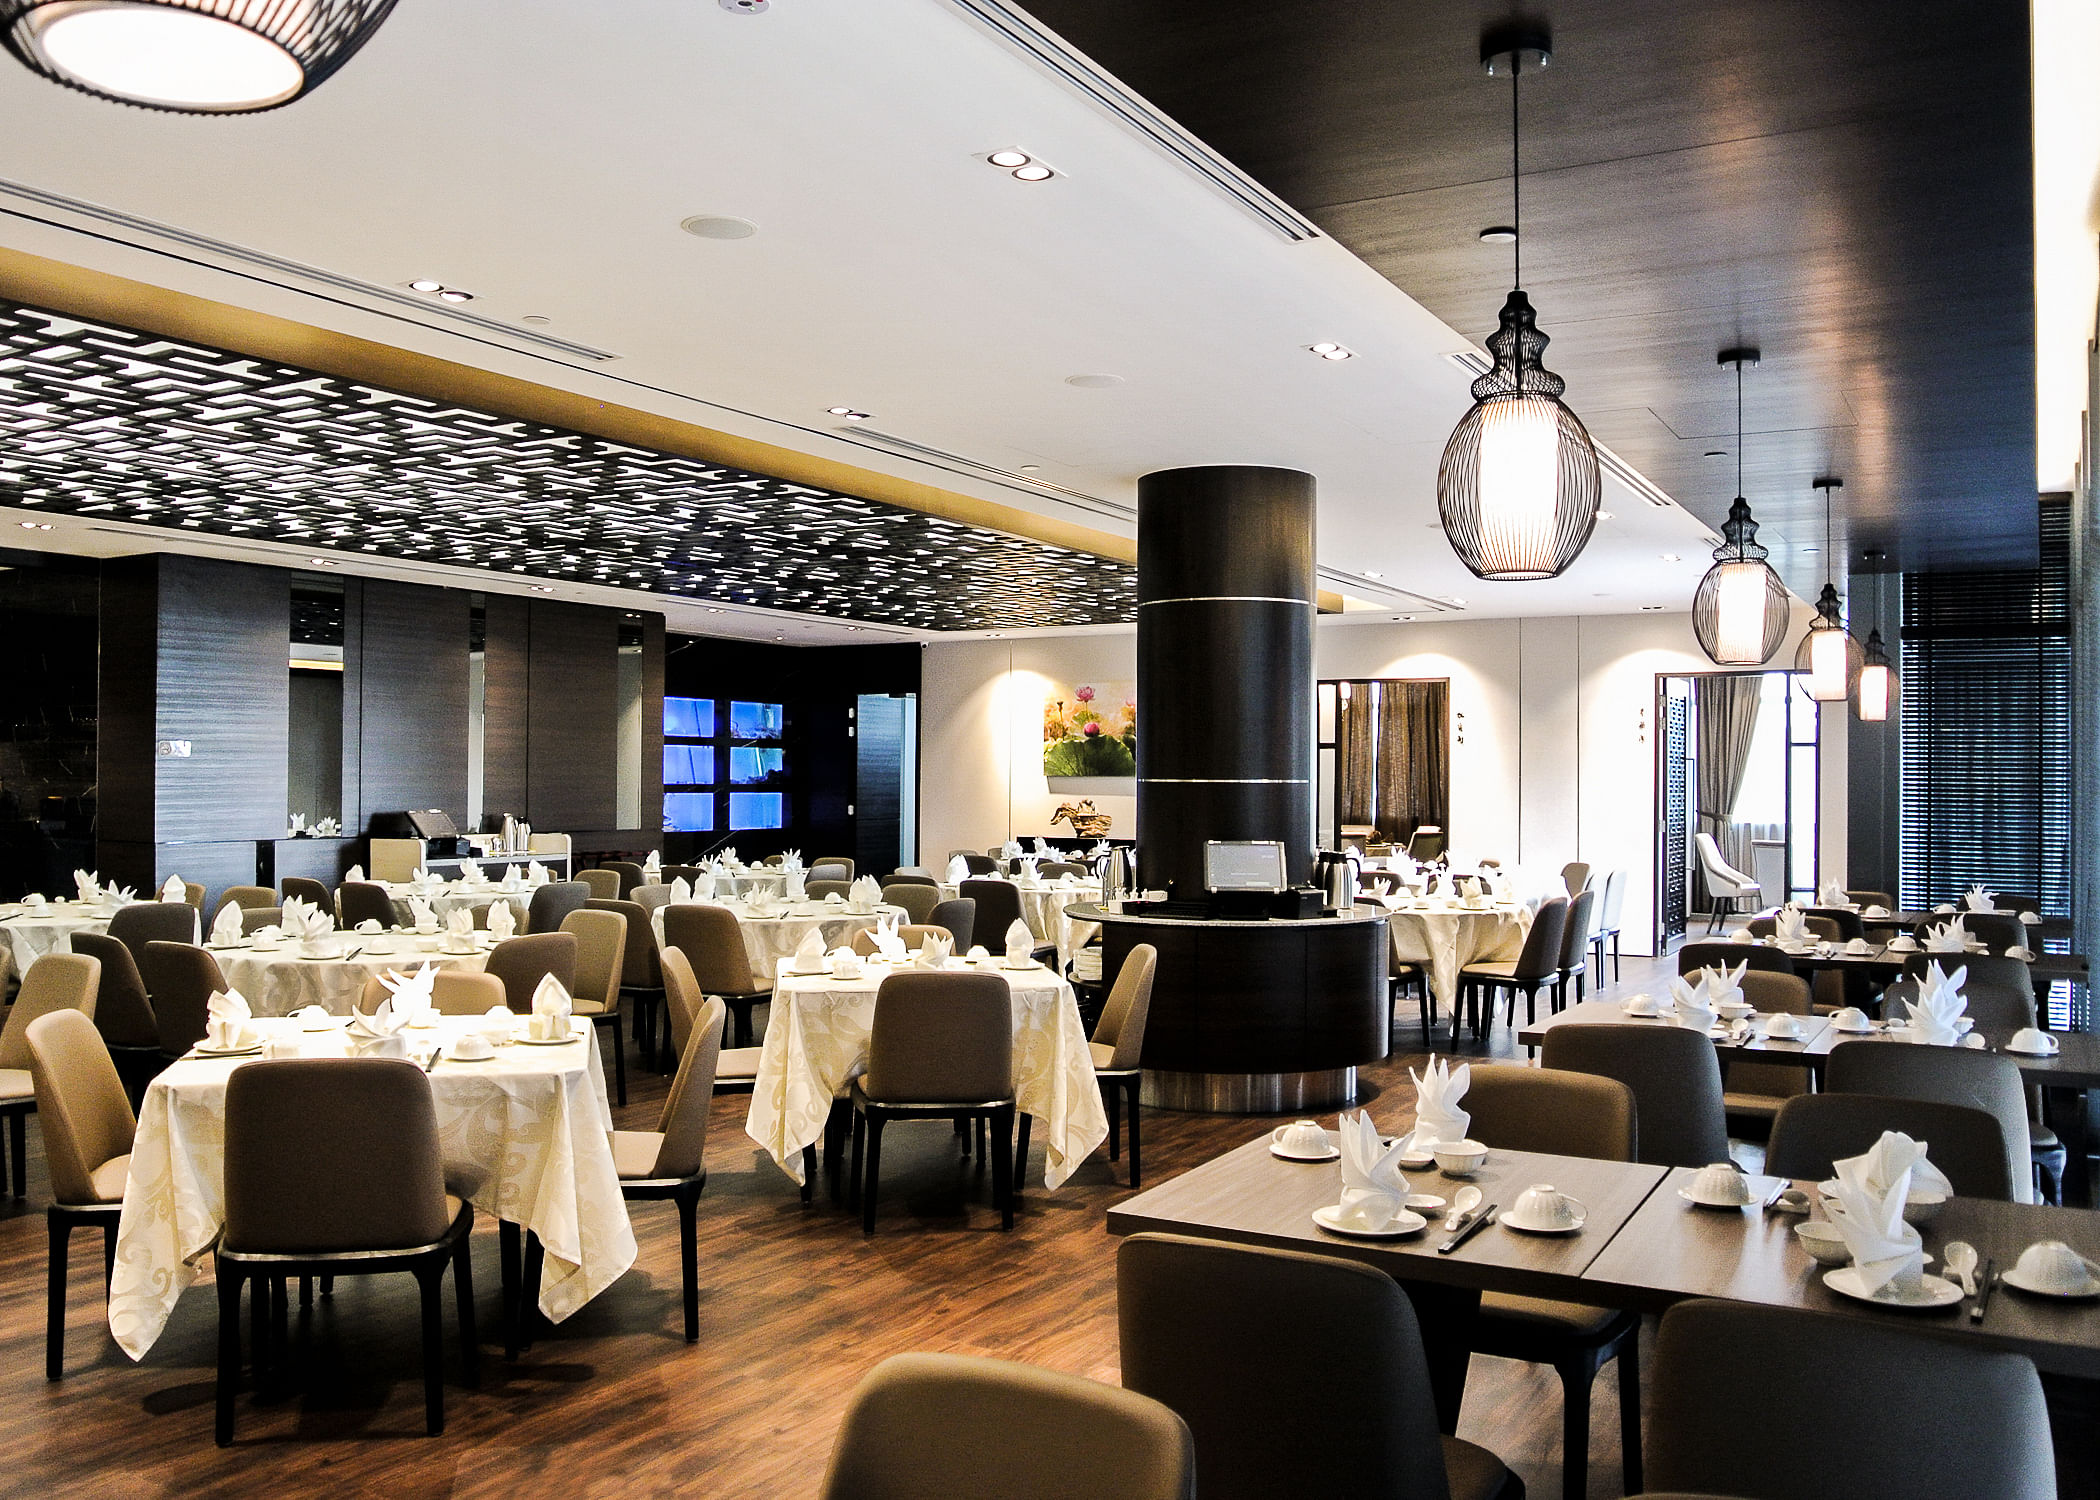 The Main Dining Area Is Contemporary And Trendy With An Attractive Elaborate Ceiling Panel Design Chic Neutral Colours Upholstered Furniture Warm